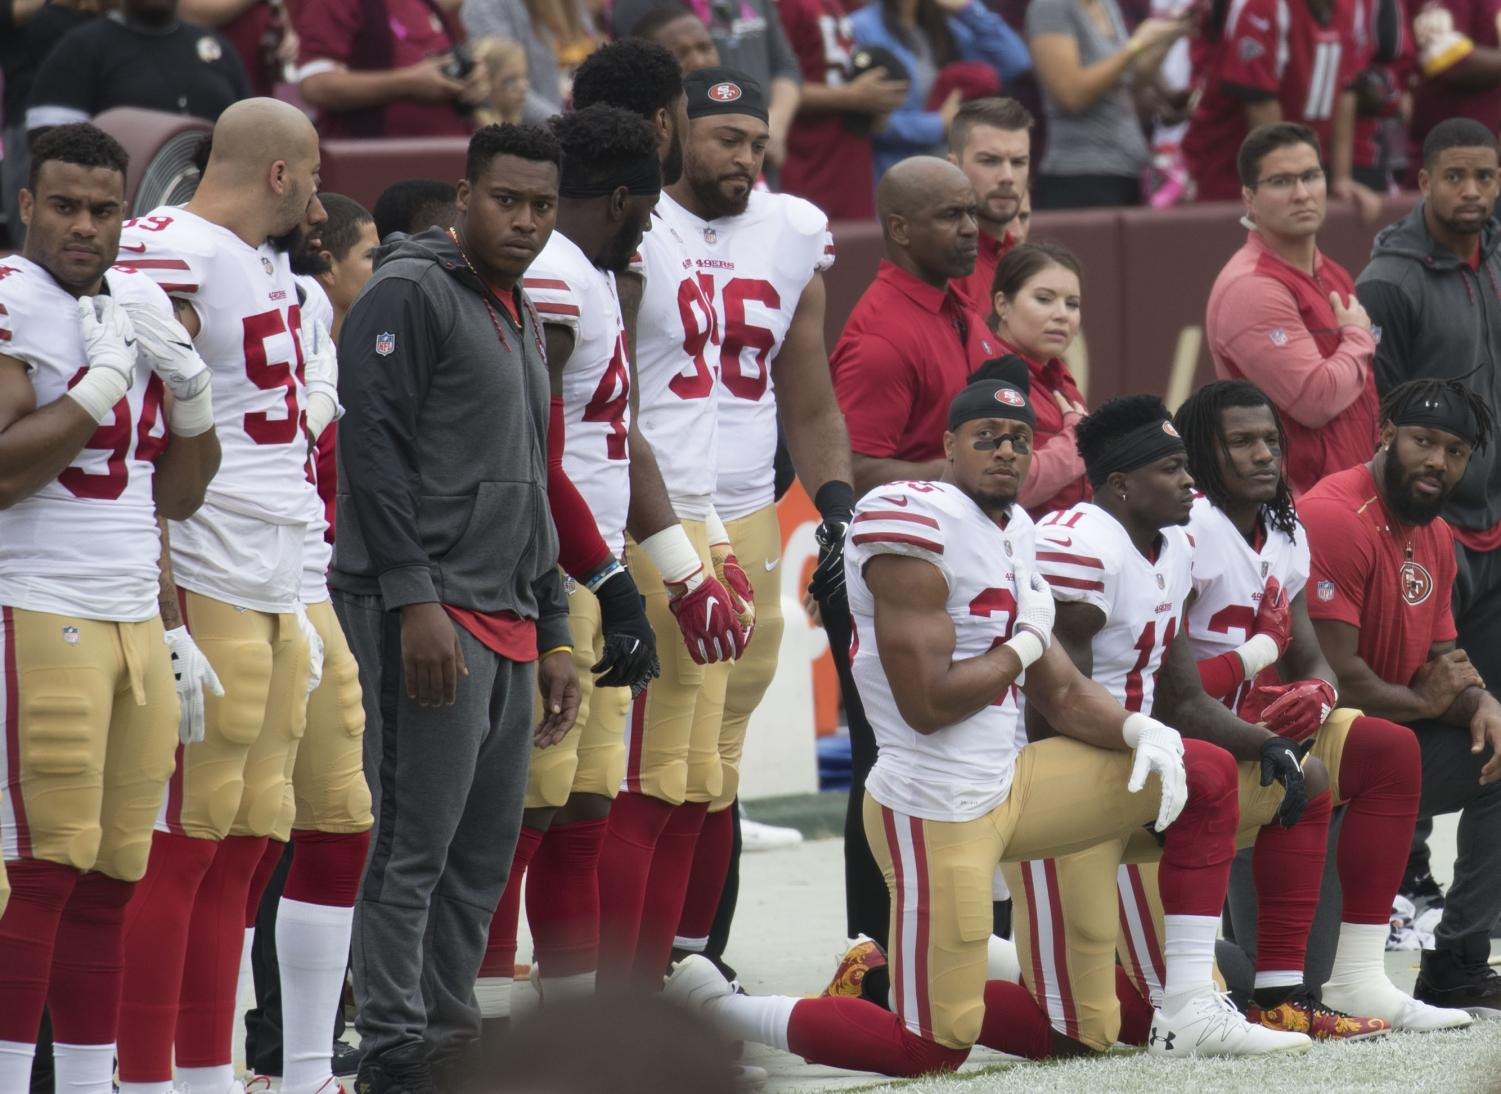 NFL players kneel in protest of police brutality during National Anthem, stirring a partisan debate